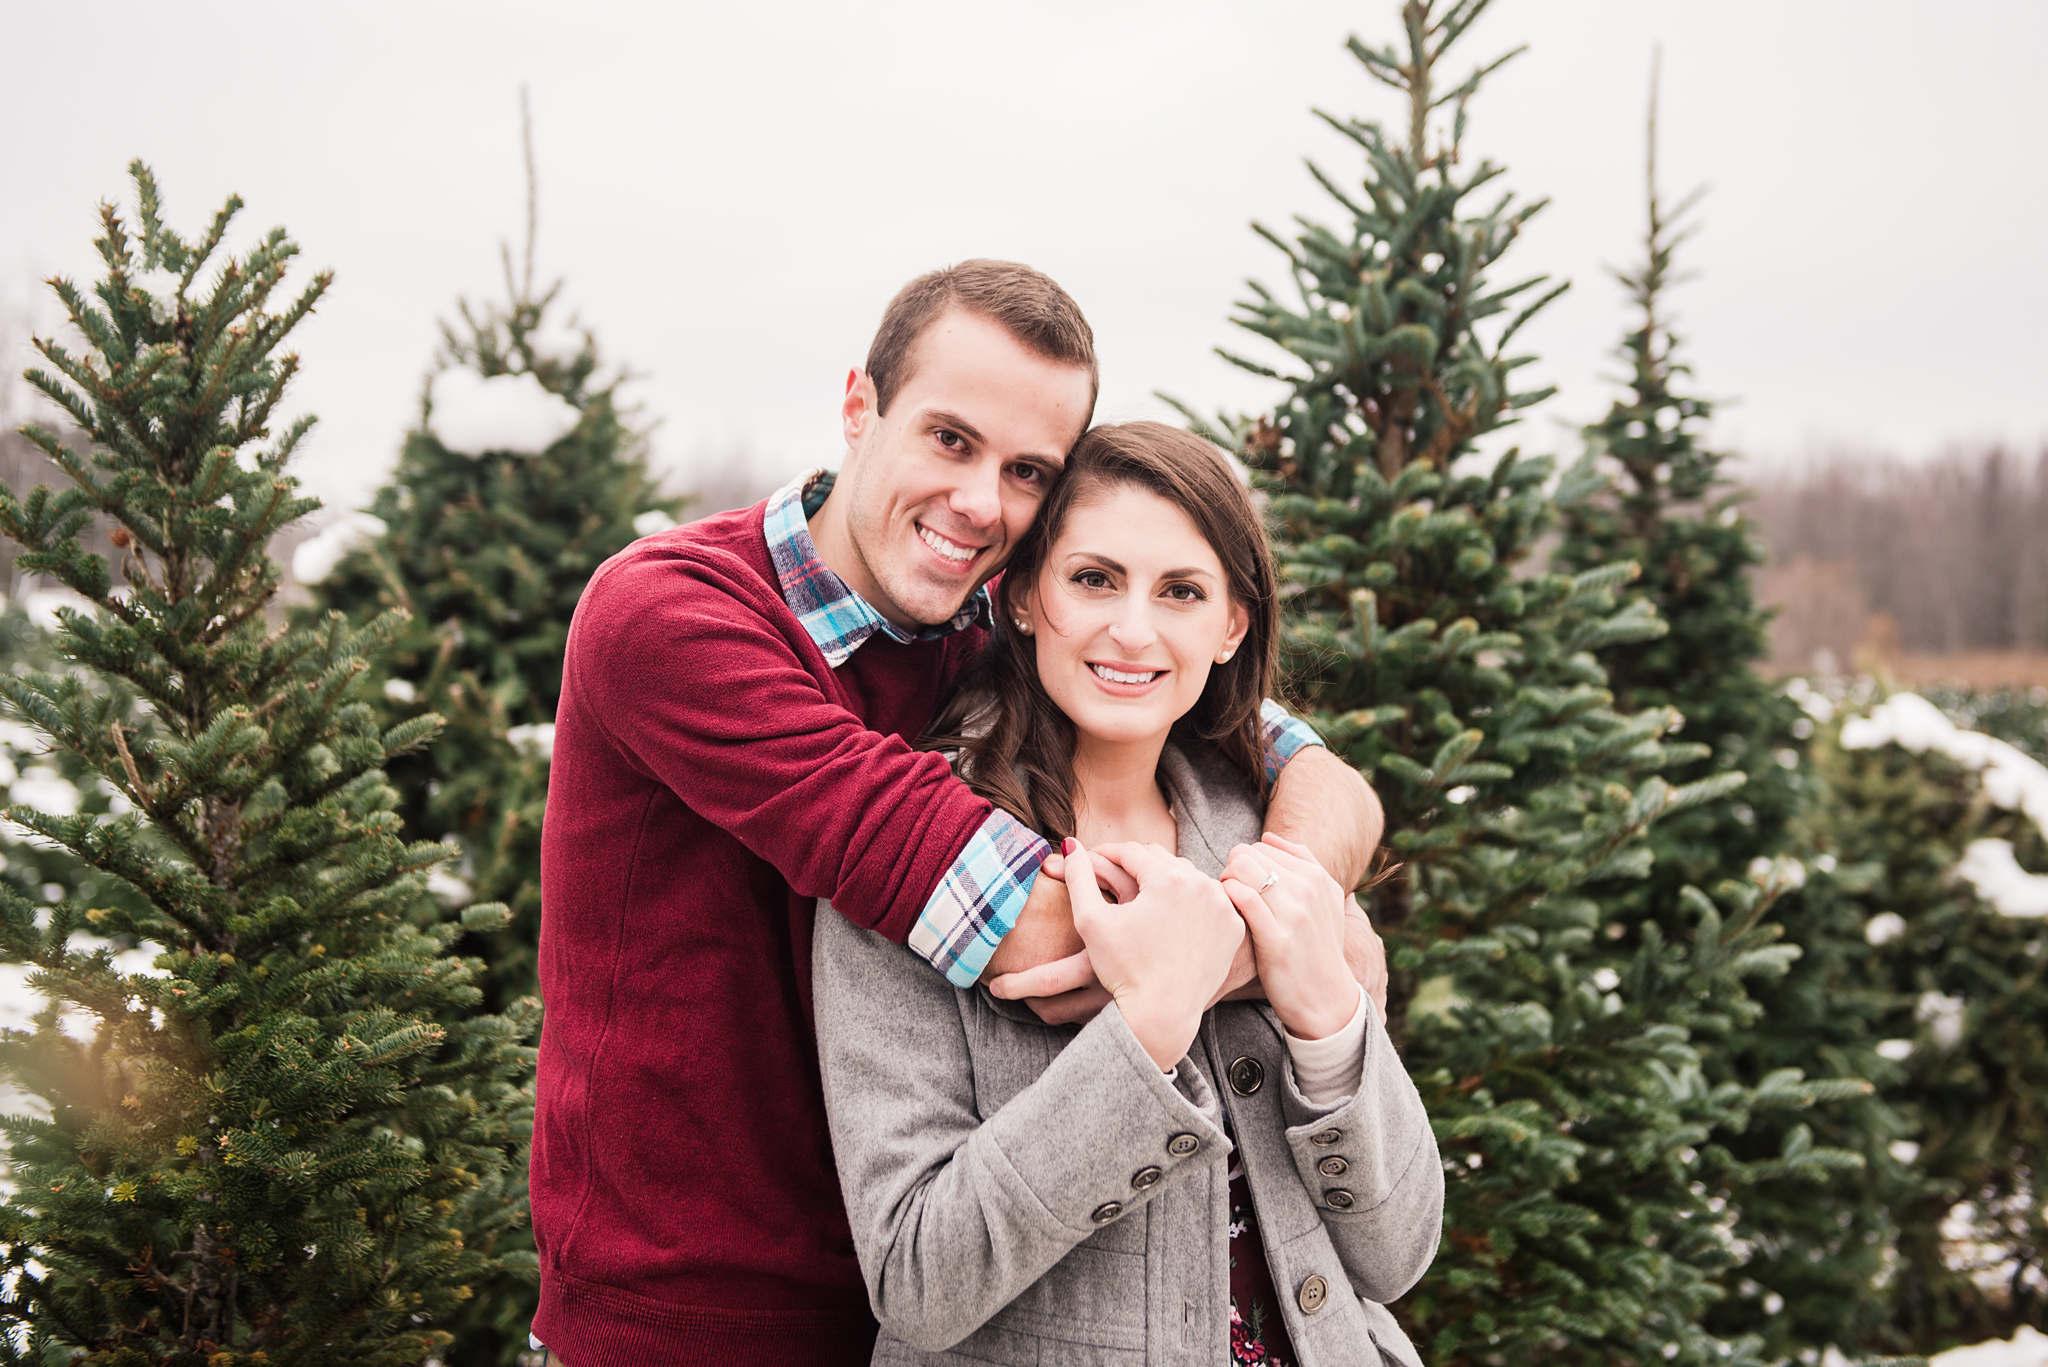 Woody_Acres_Rochester_Engagement_Session_JILL_STUDIO_Rochester_NY_Photographer_152358.jpg